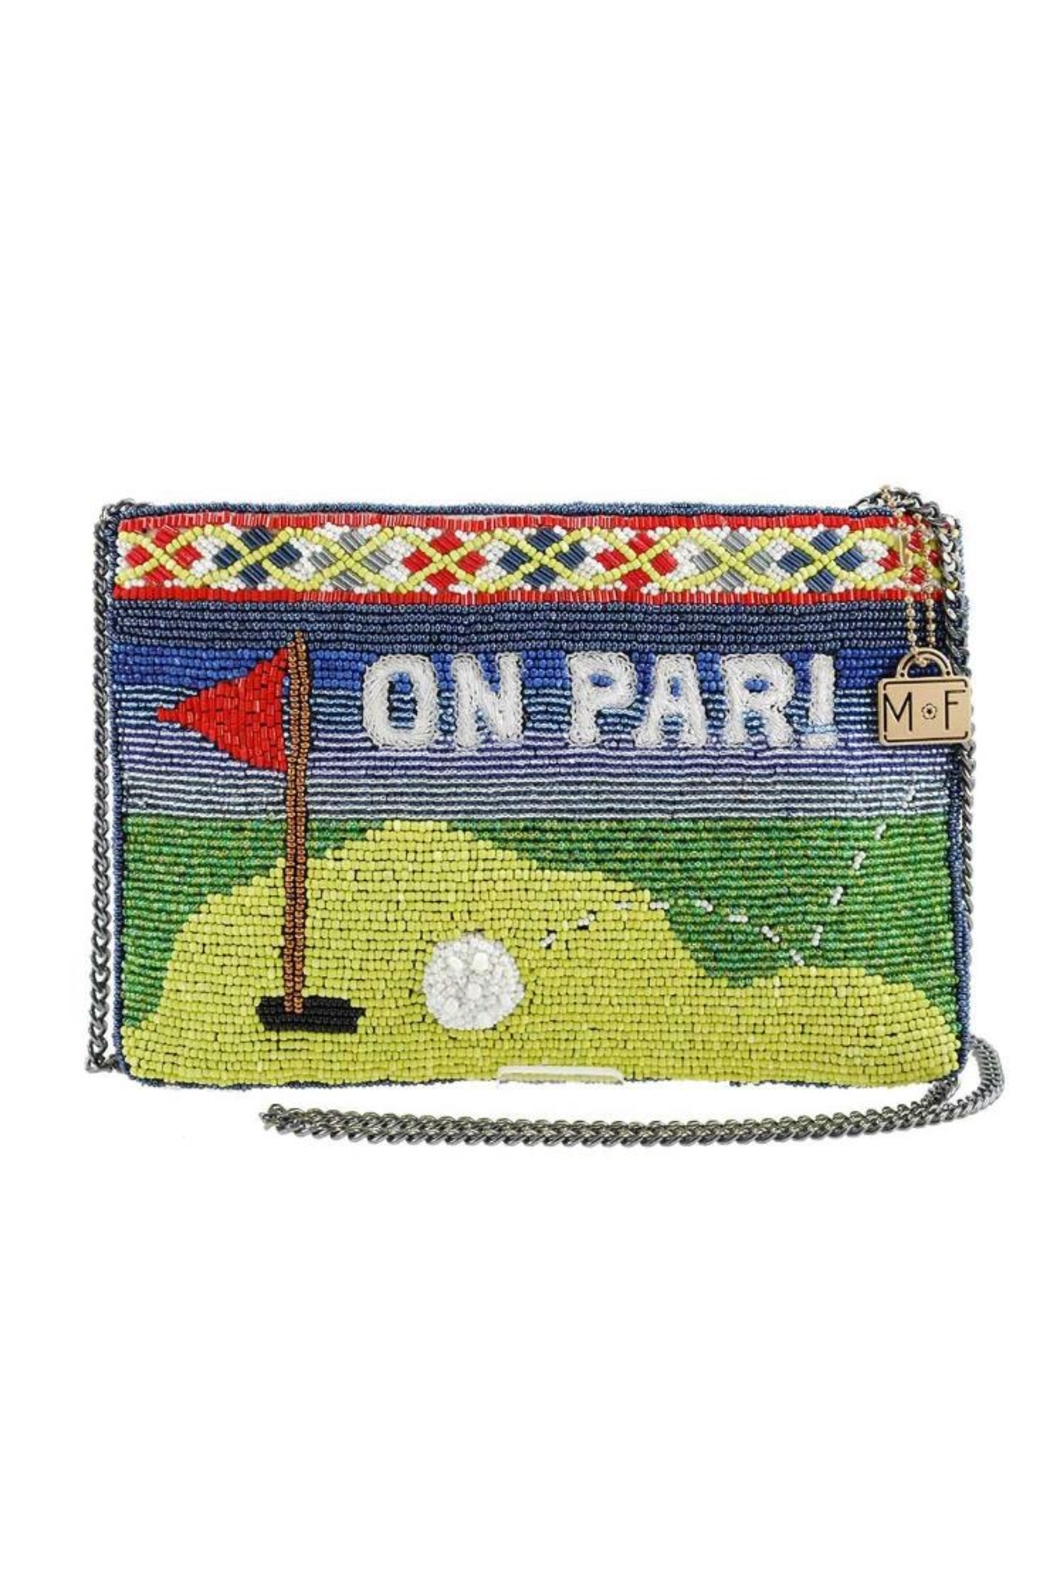 Mary Frances Par-Tee Beaded Clutch - Front Cropped Image